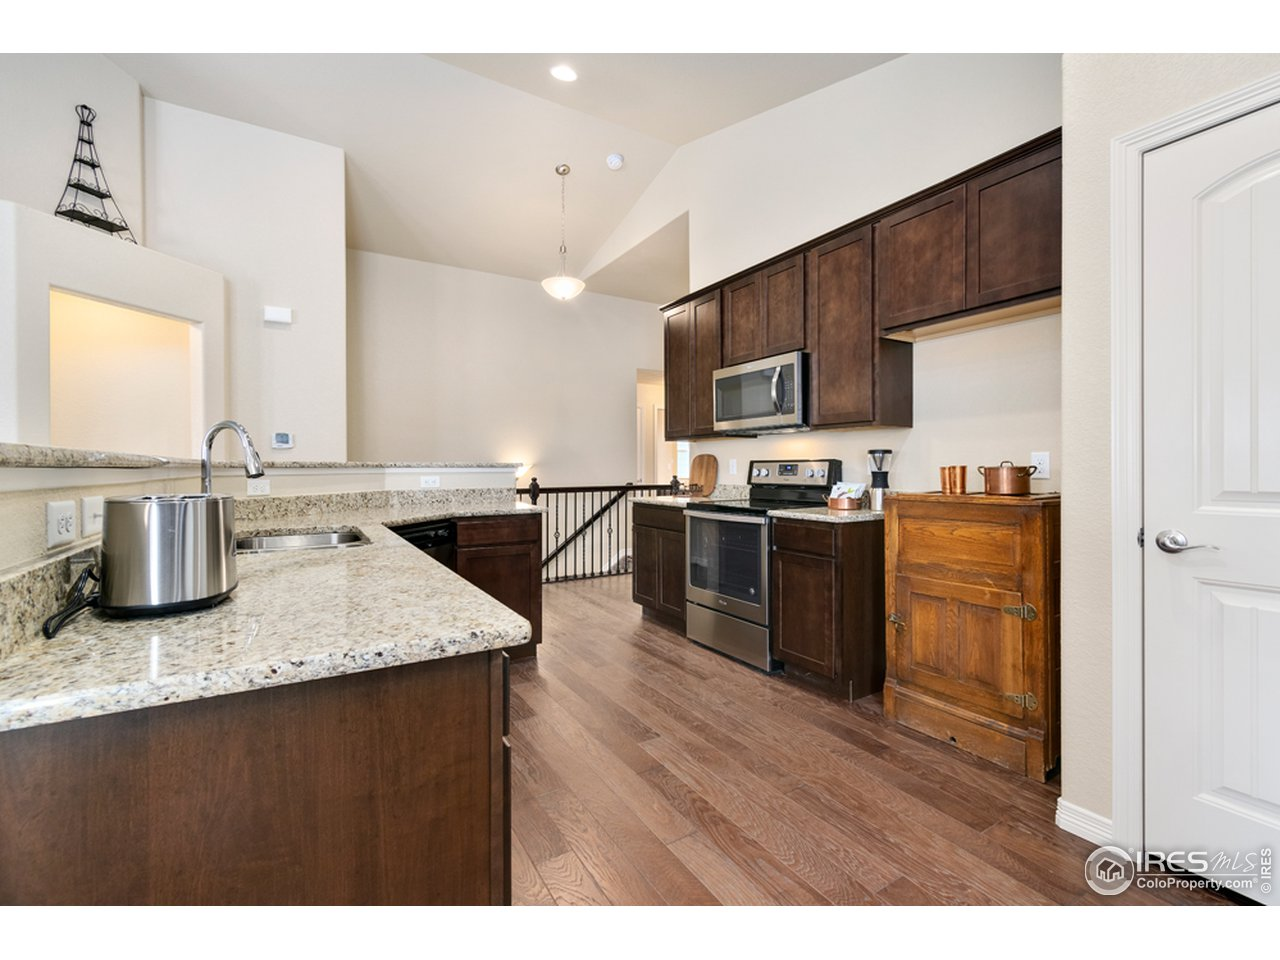 Spacious and efficient kitchen